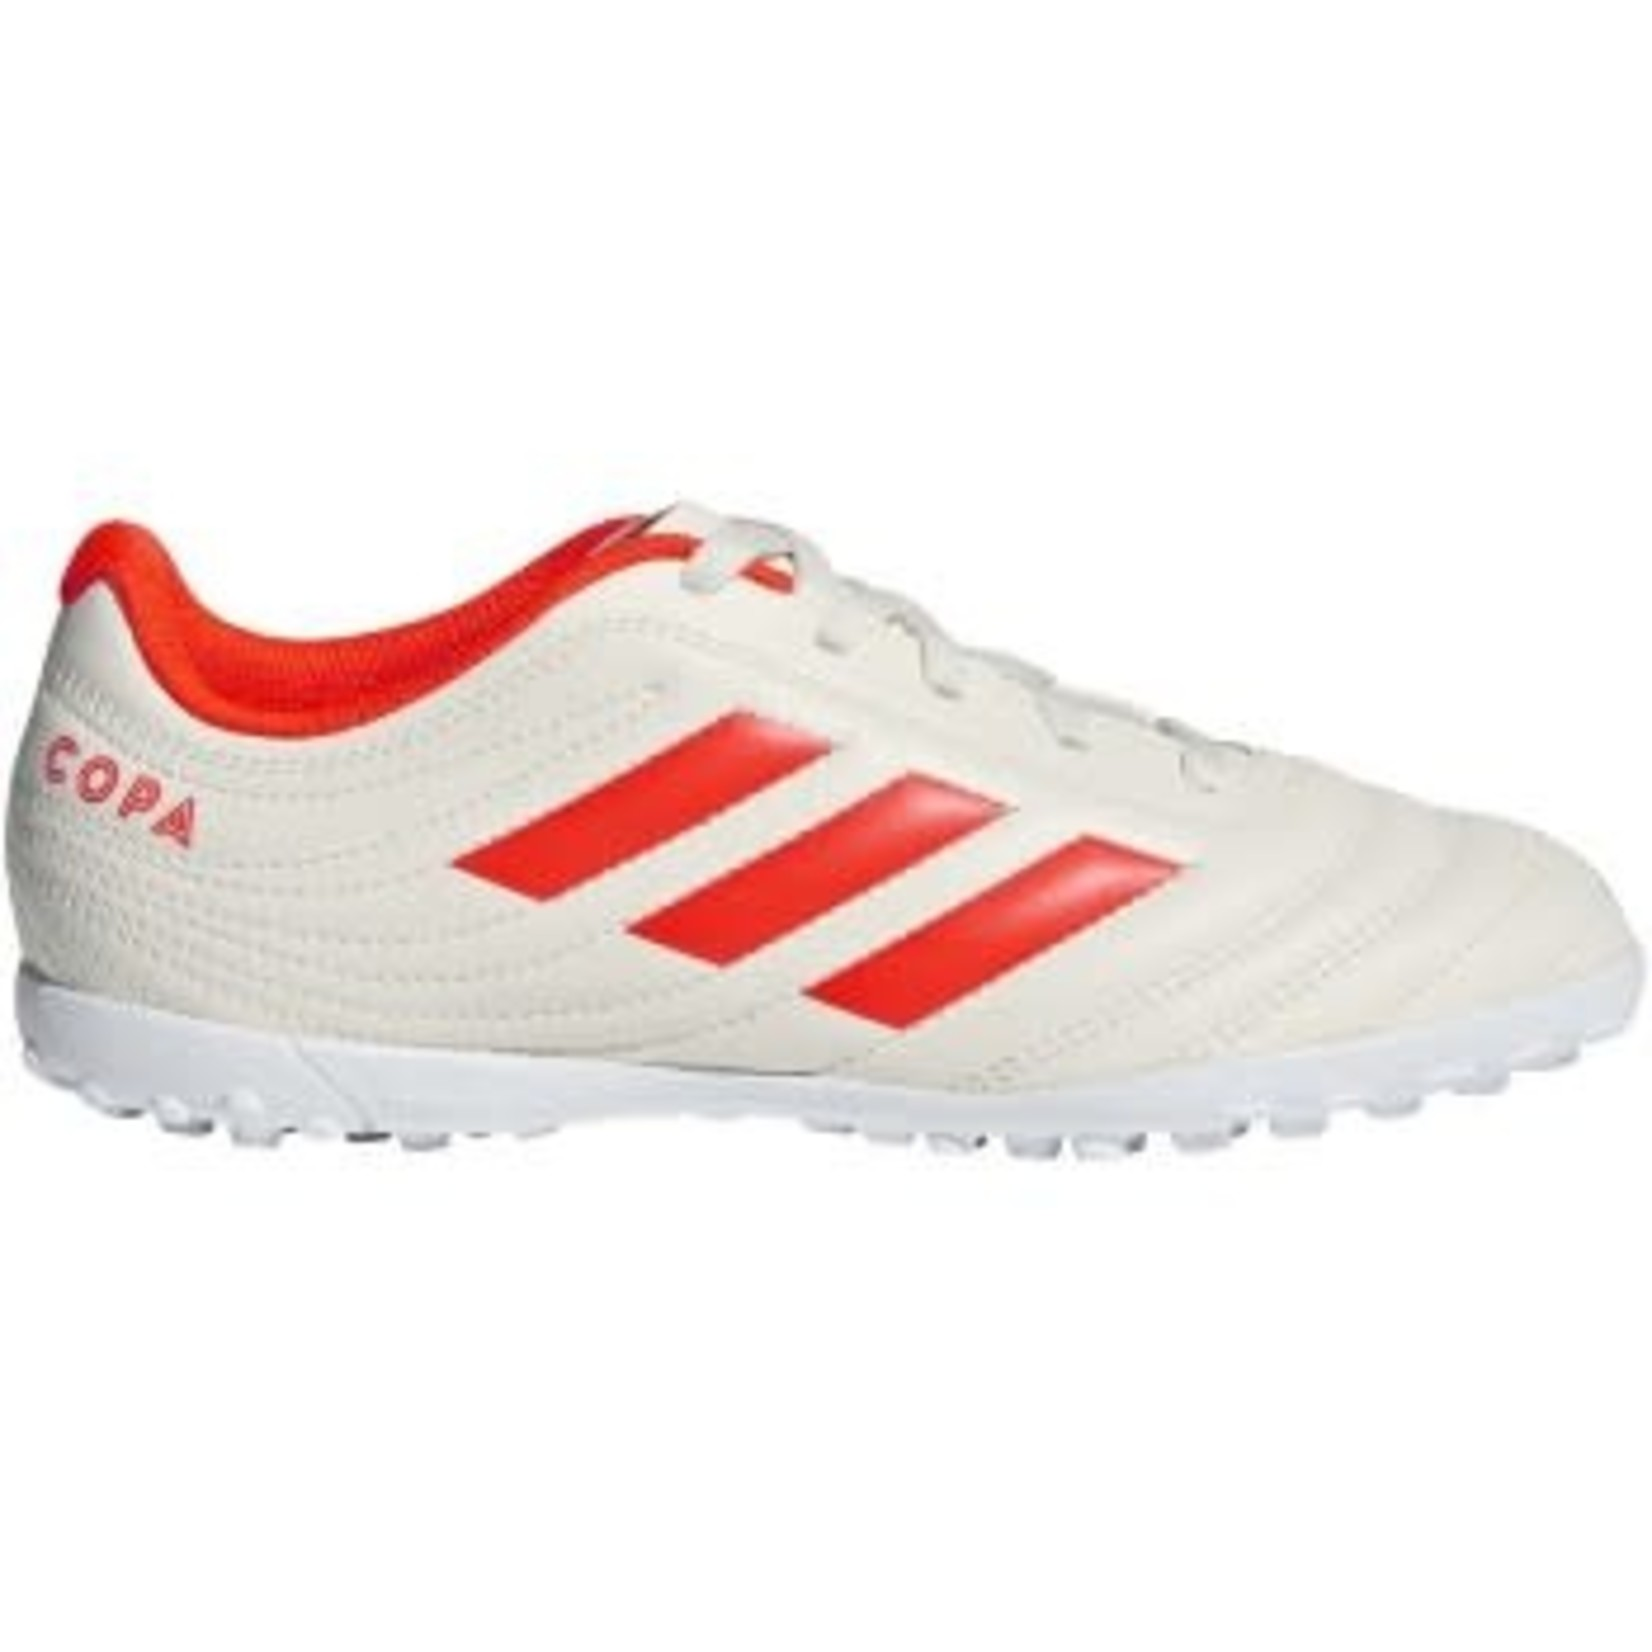 ADIDAS COPA 19.4 TF JR (WHITE/RED)